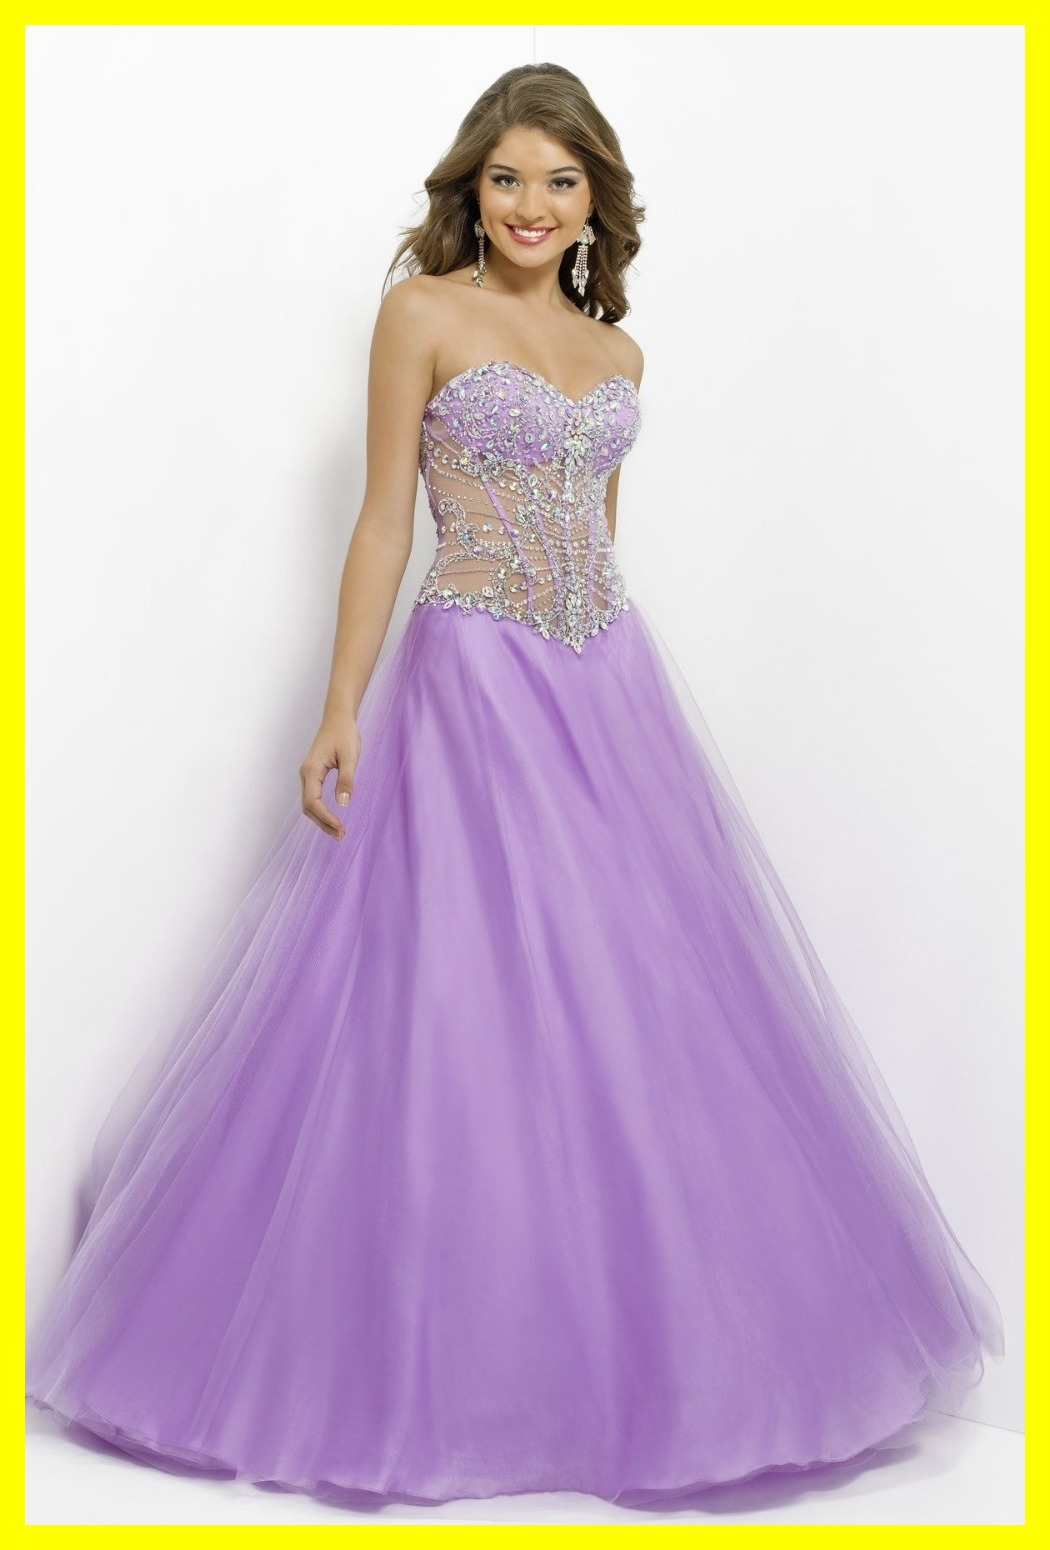 Custom Prom Dress Funky Dresses Cocktail Elegant Uk A-Line Floor-Length None Built-In Bra Crystal Strapless Off T 2015 In Stock(China (Mainland))